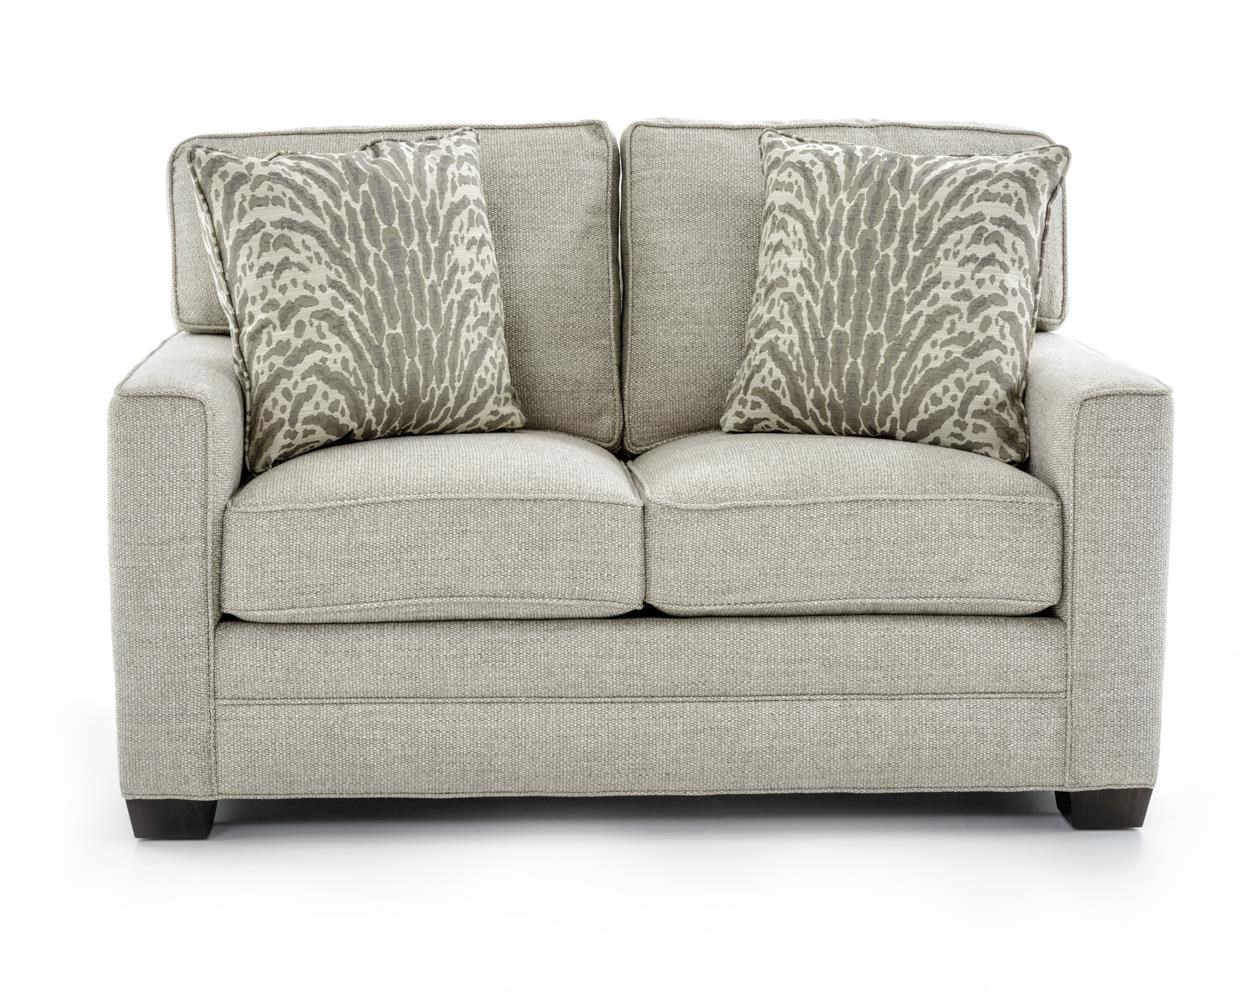 Customizable Loveseat